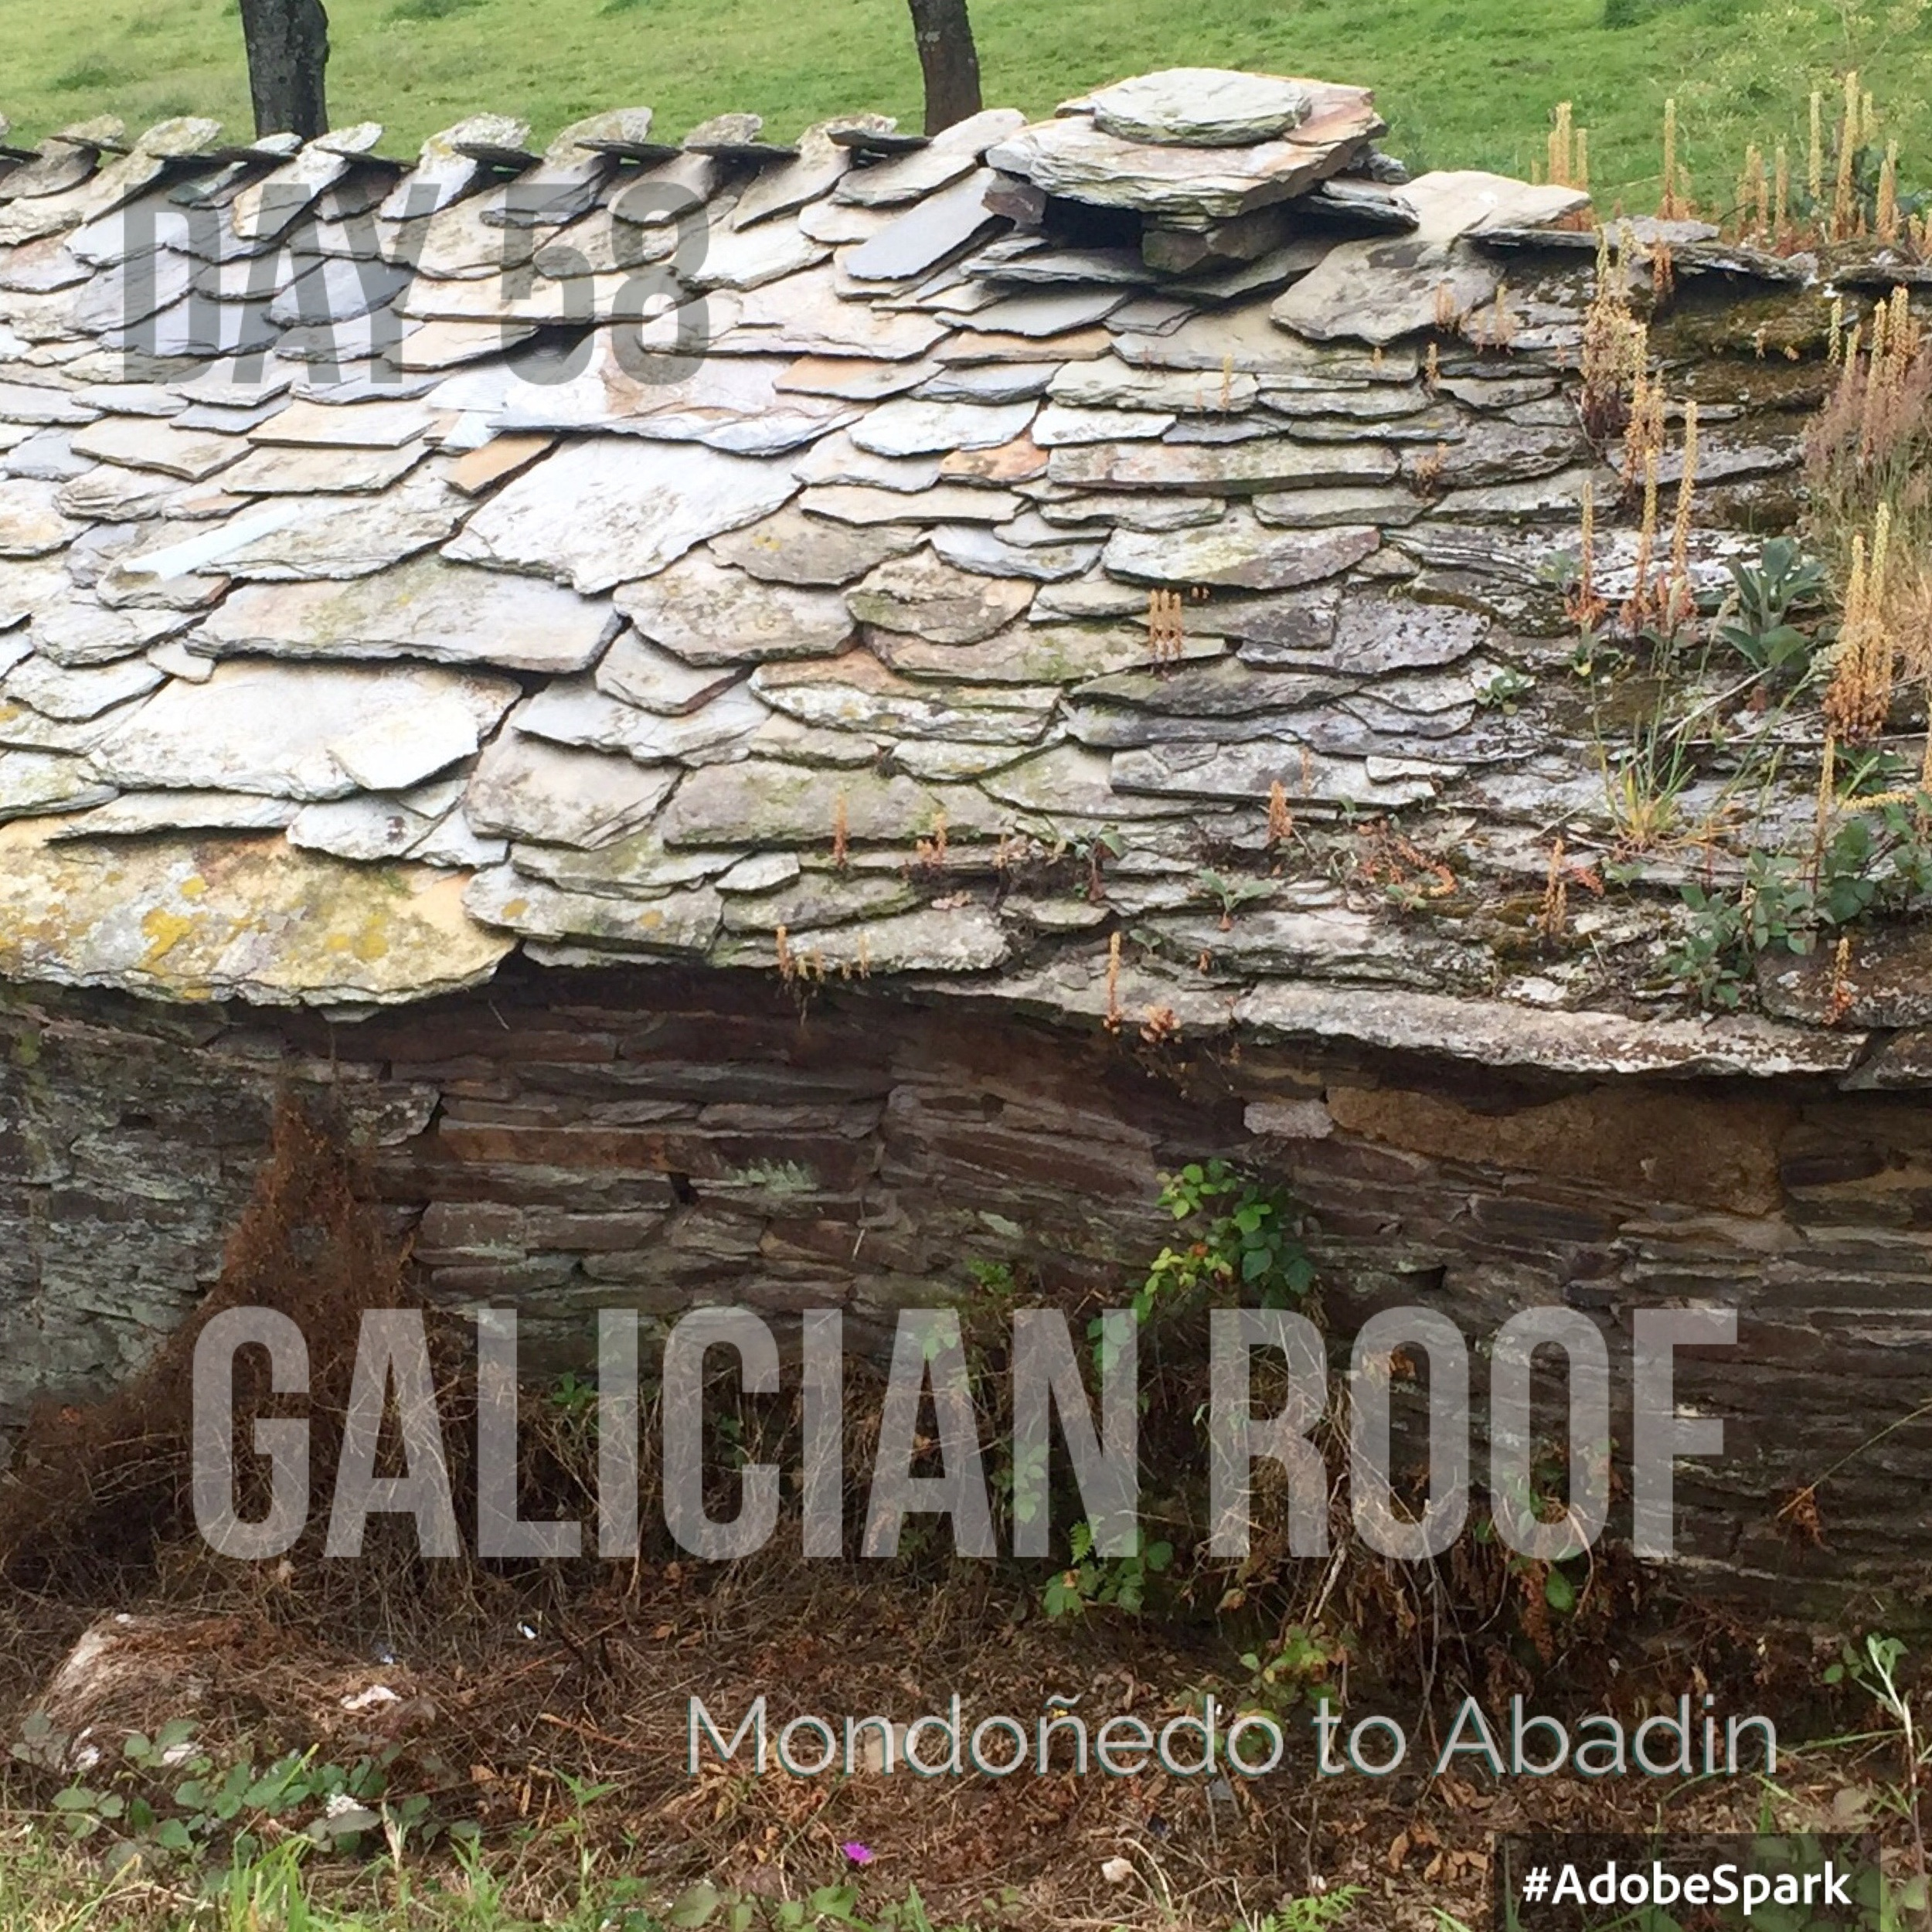 Slate roofs are characteric of Galicia